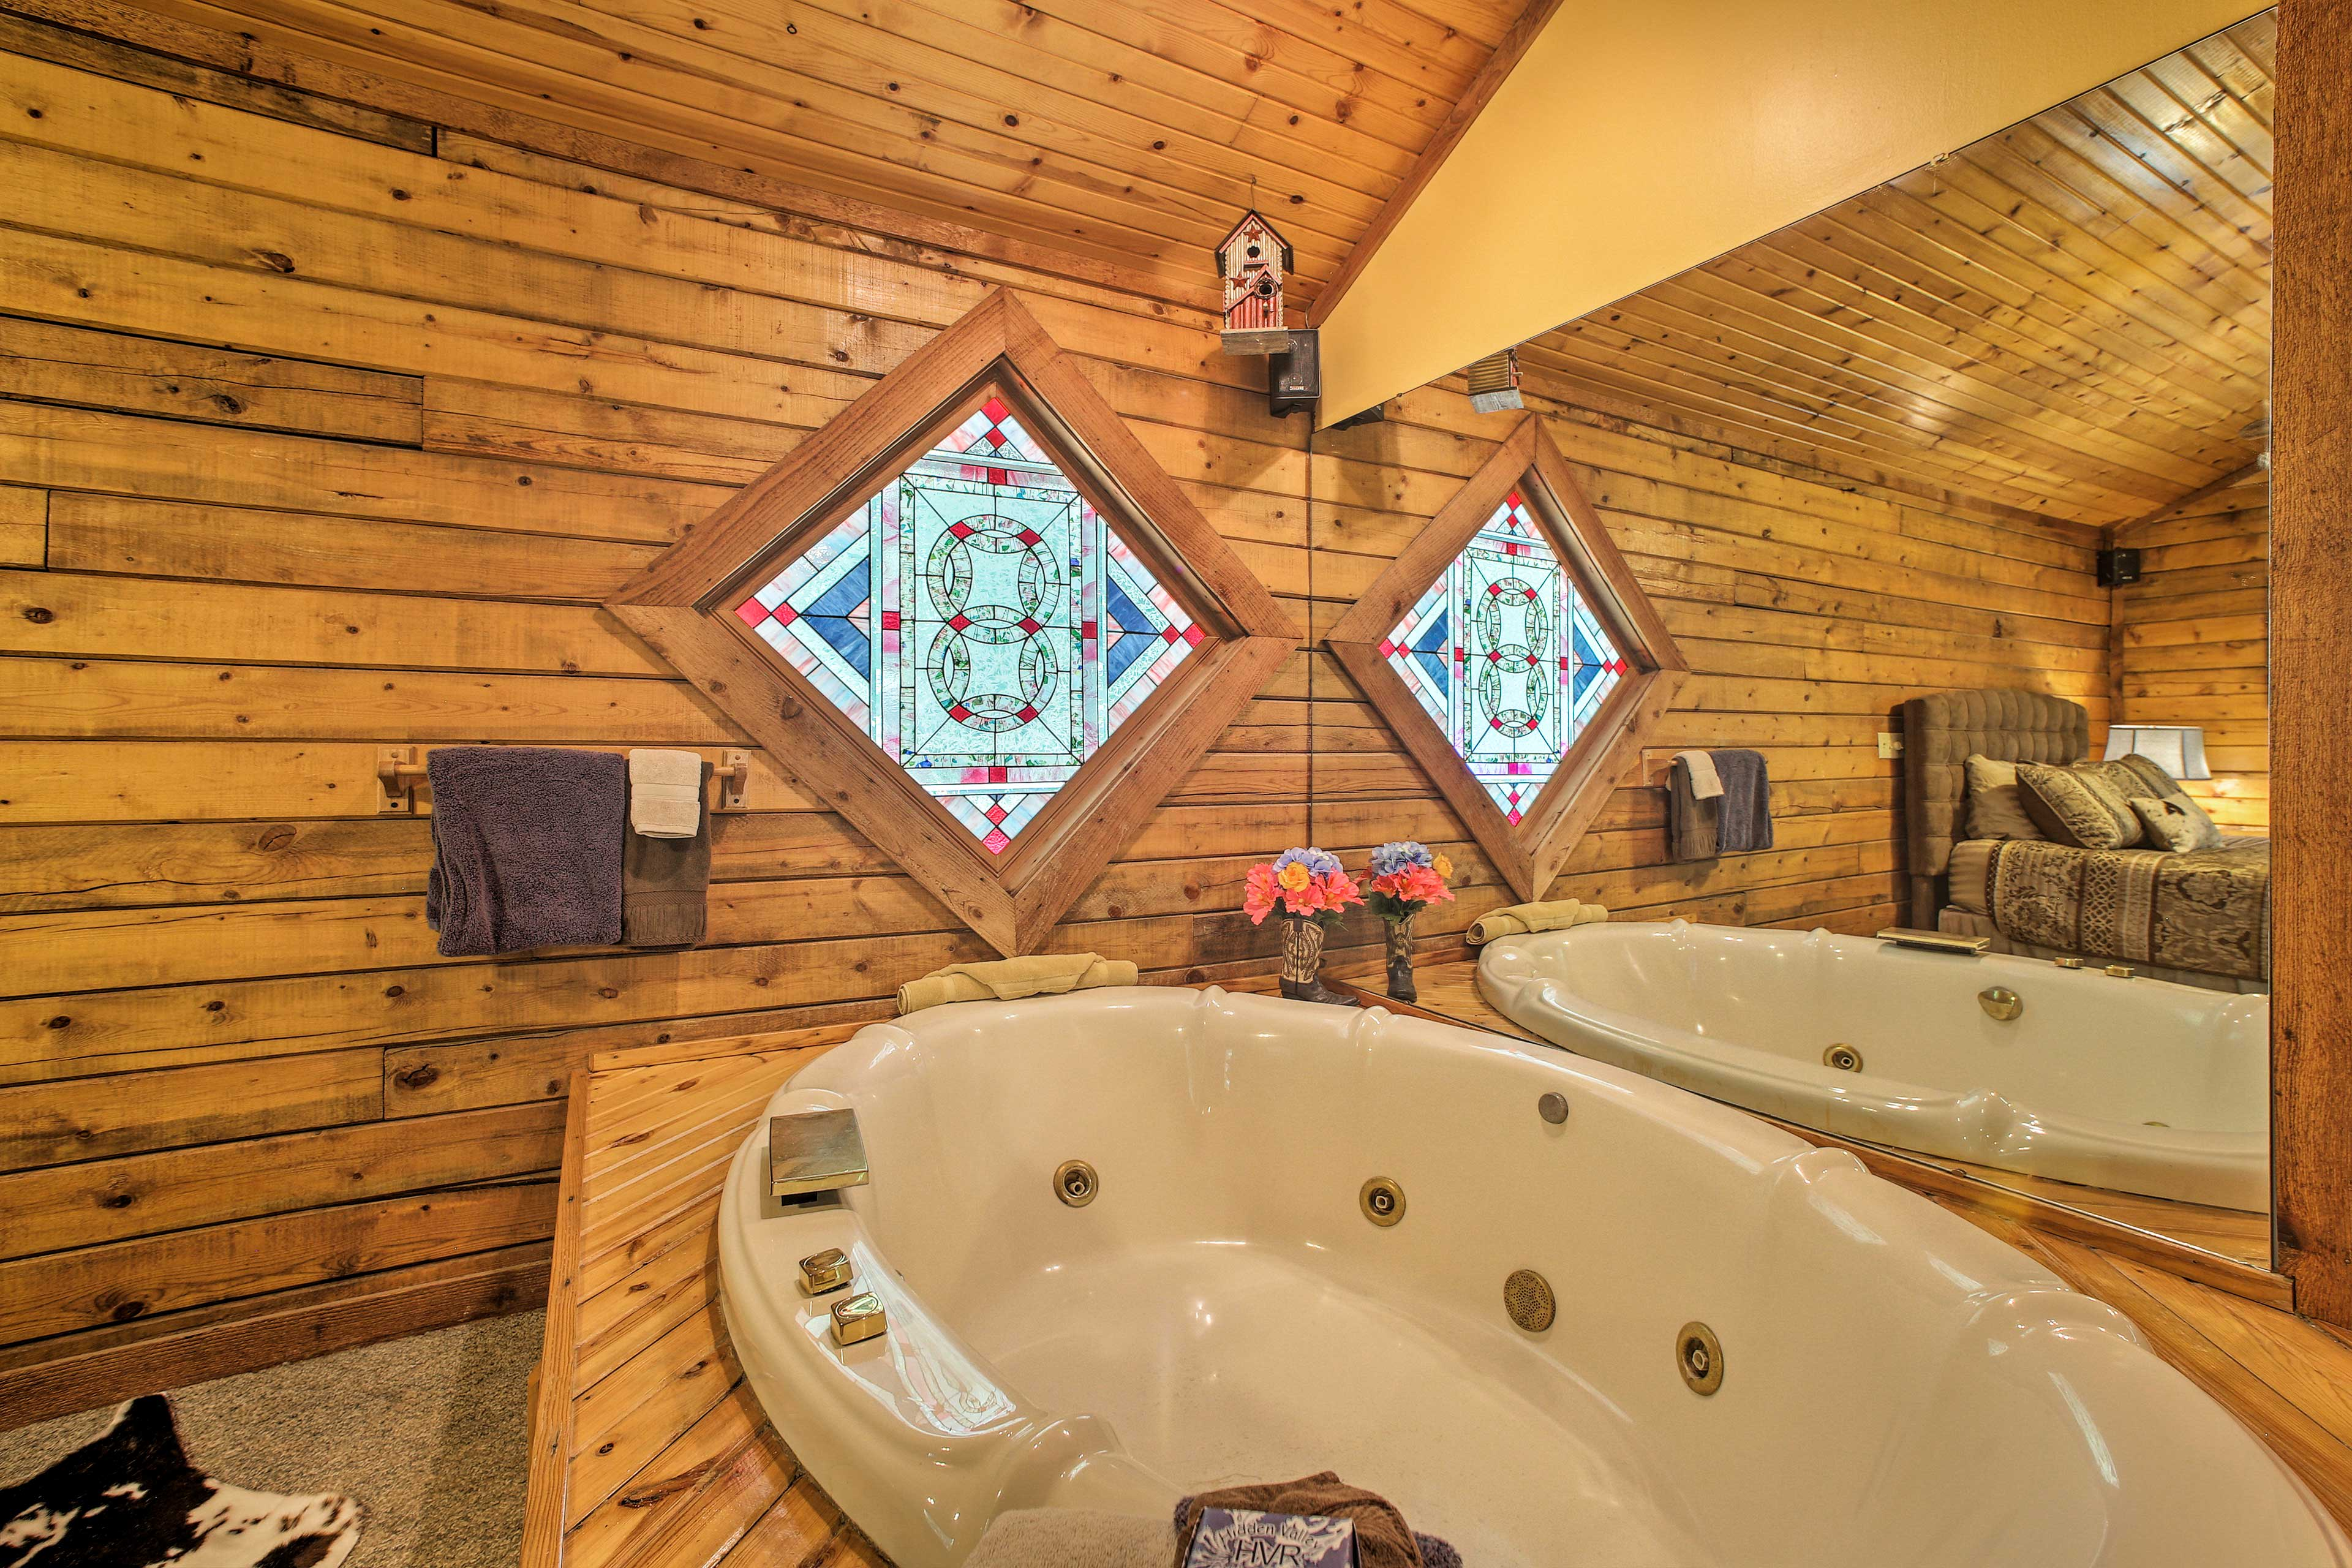 Soothe your muscles in the Jacuzzi tub.